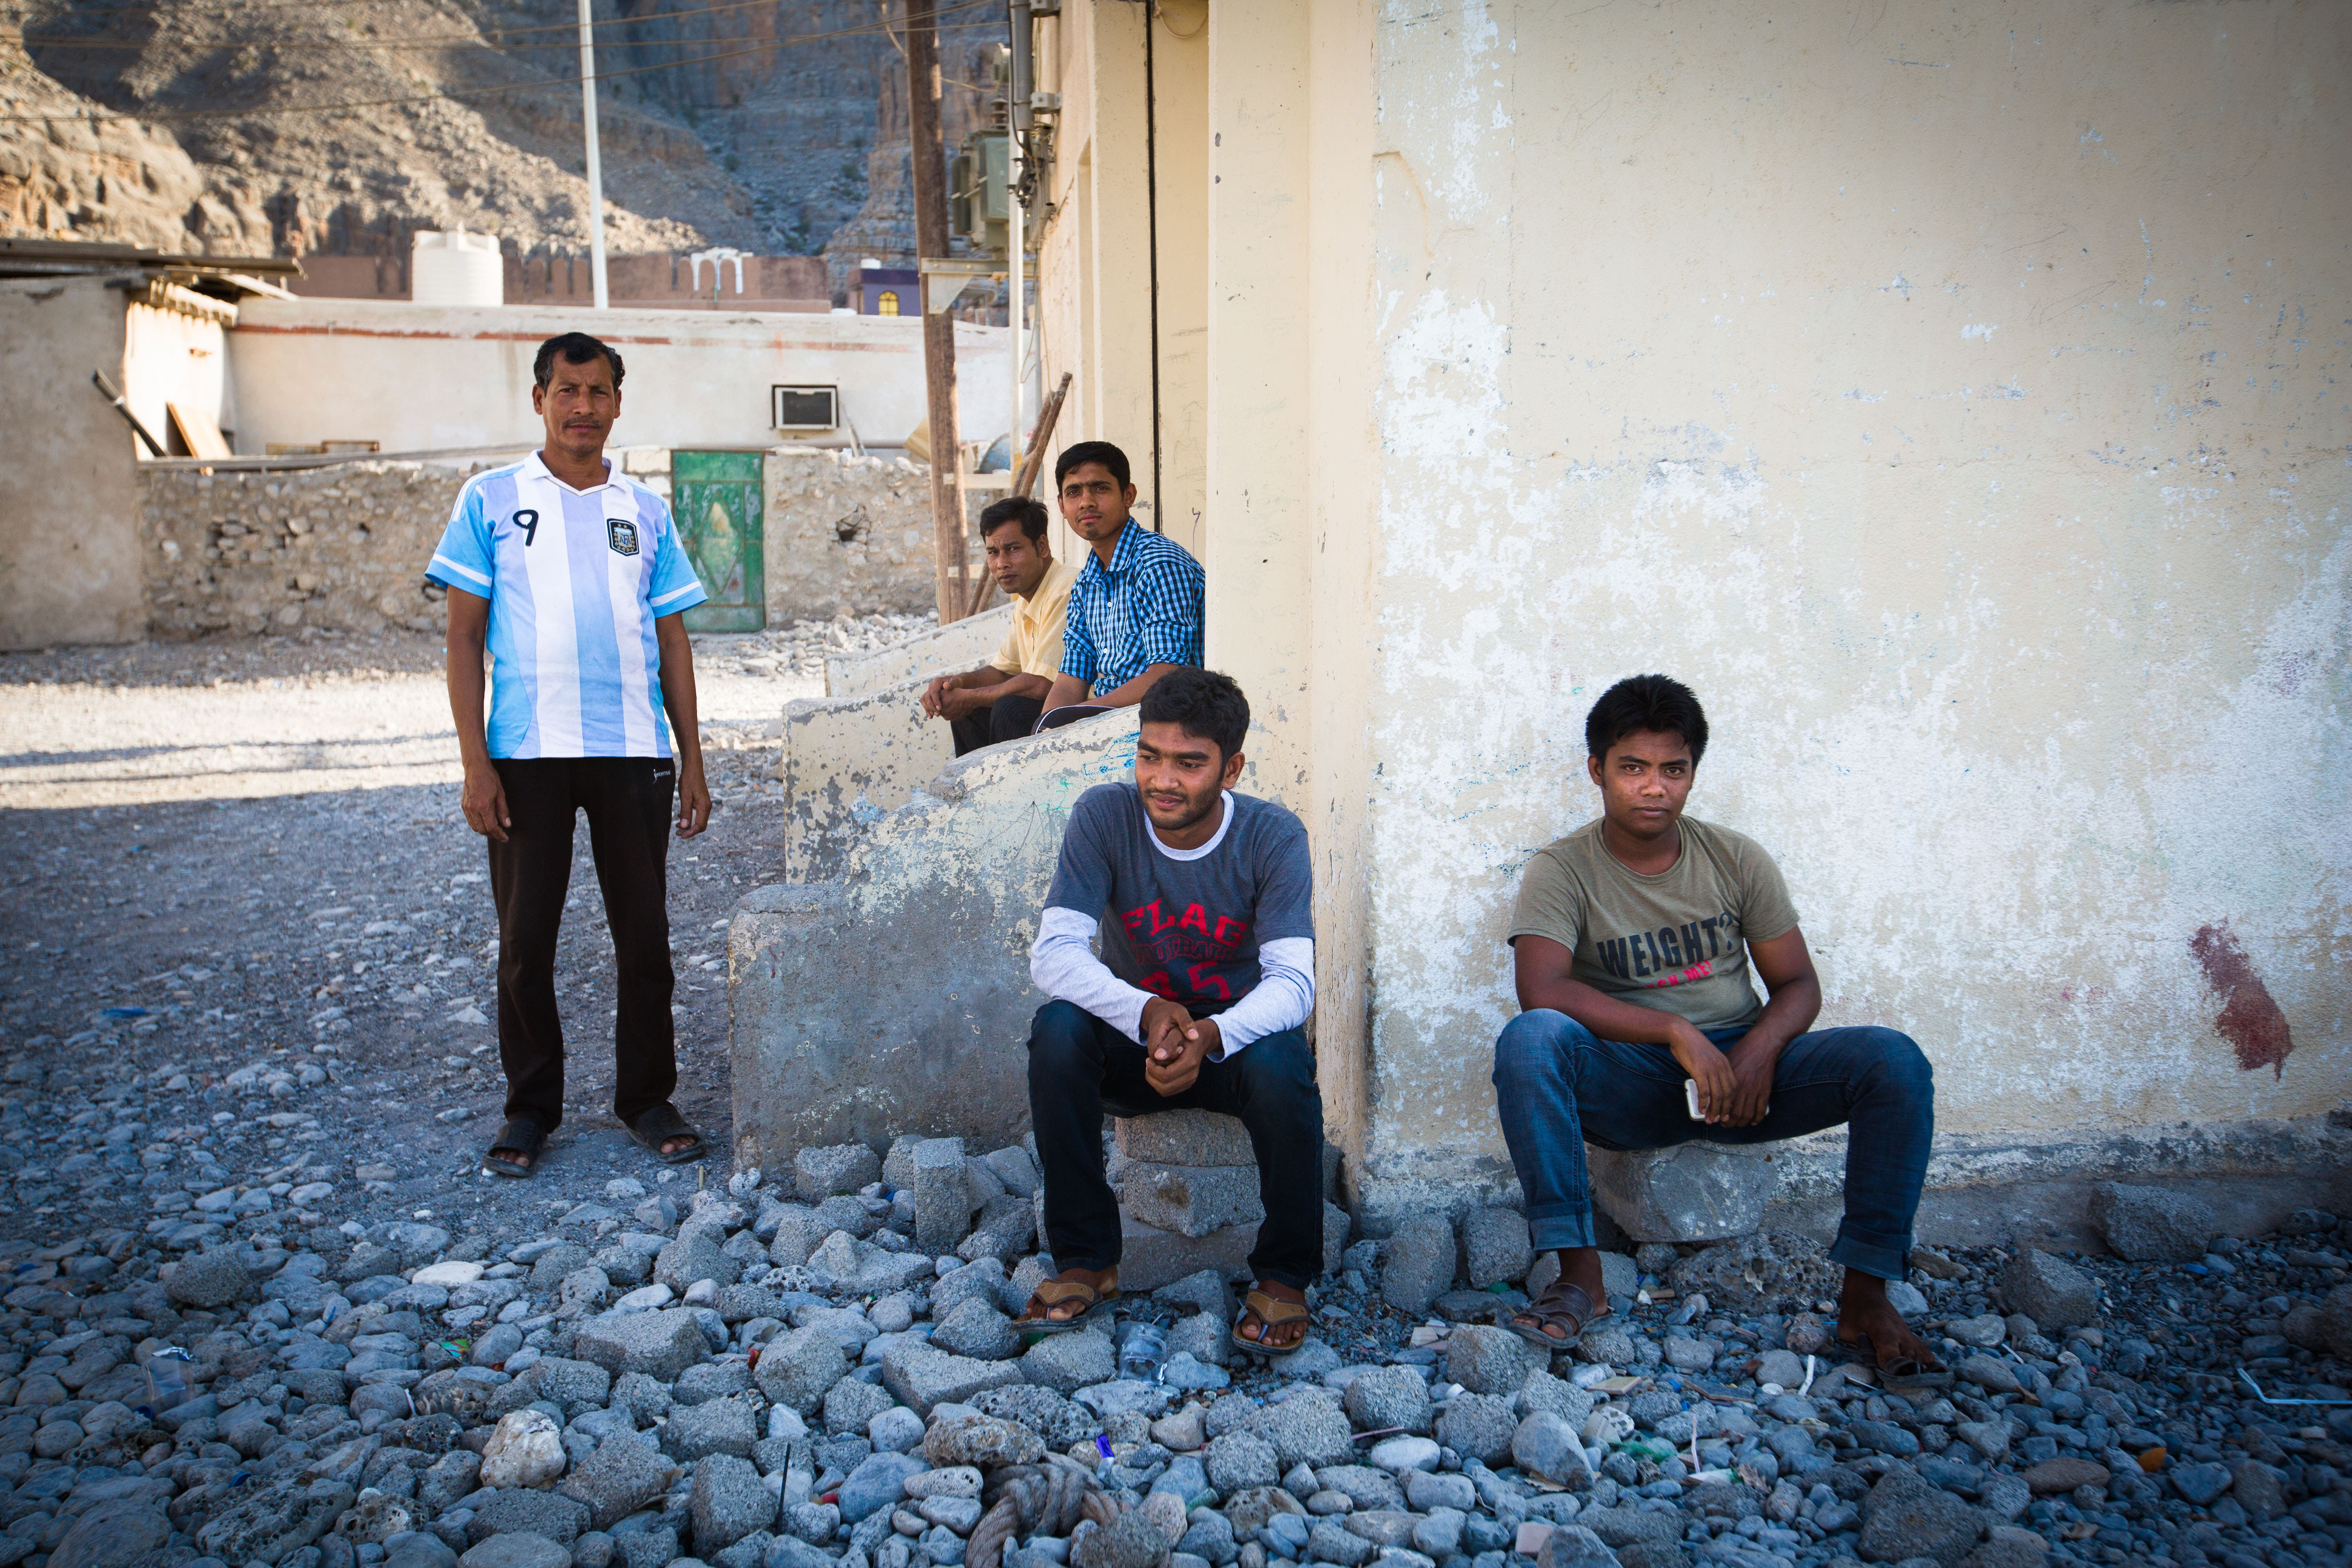 South Asian workers in town to construct a new road up the mountain. (Amanda Fisher/Al Arabiya News)